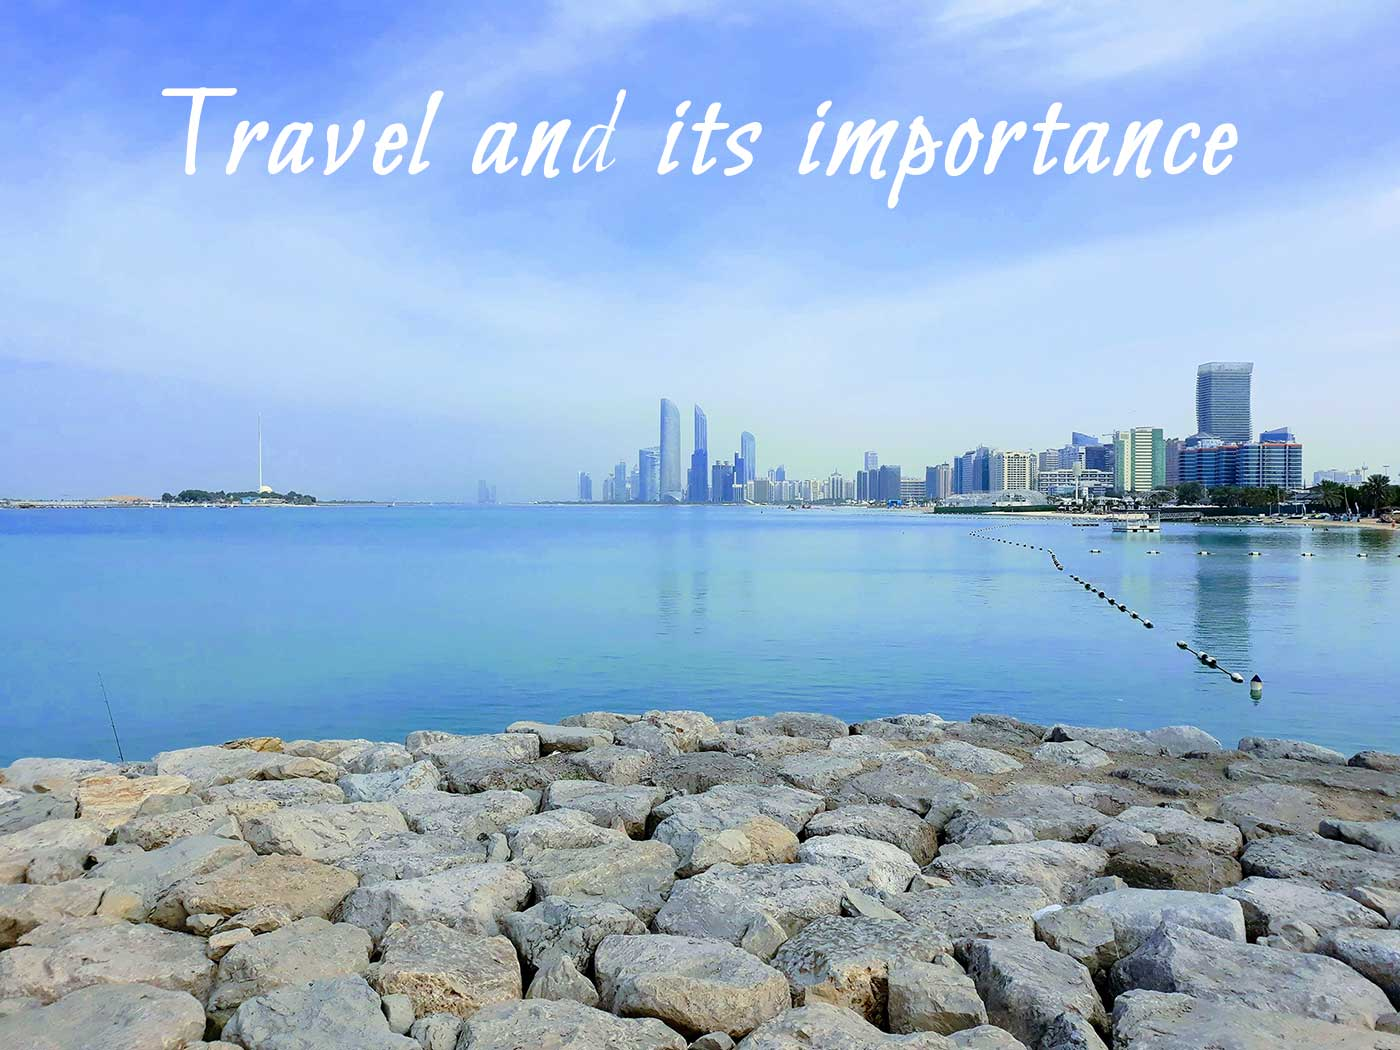 Travel and its importance